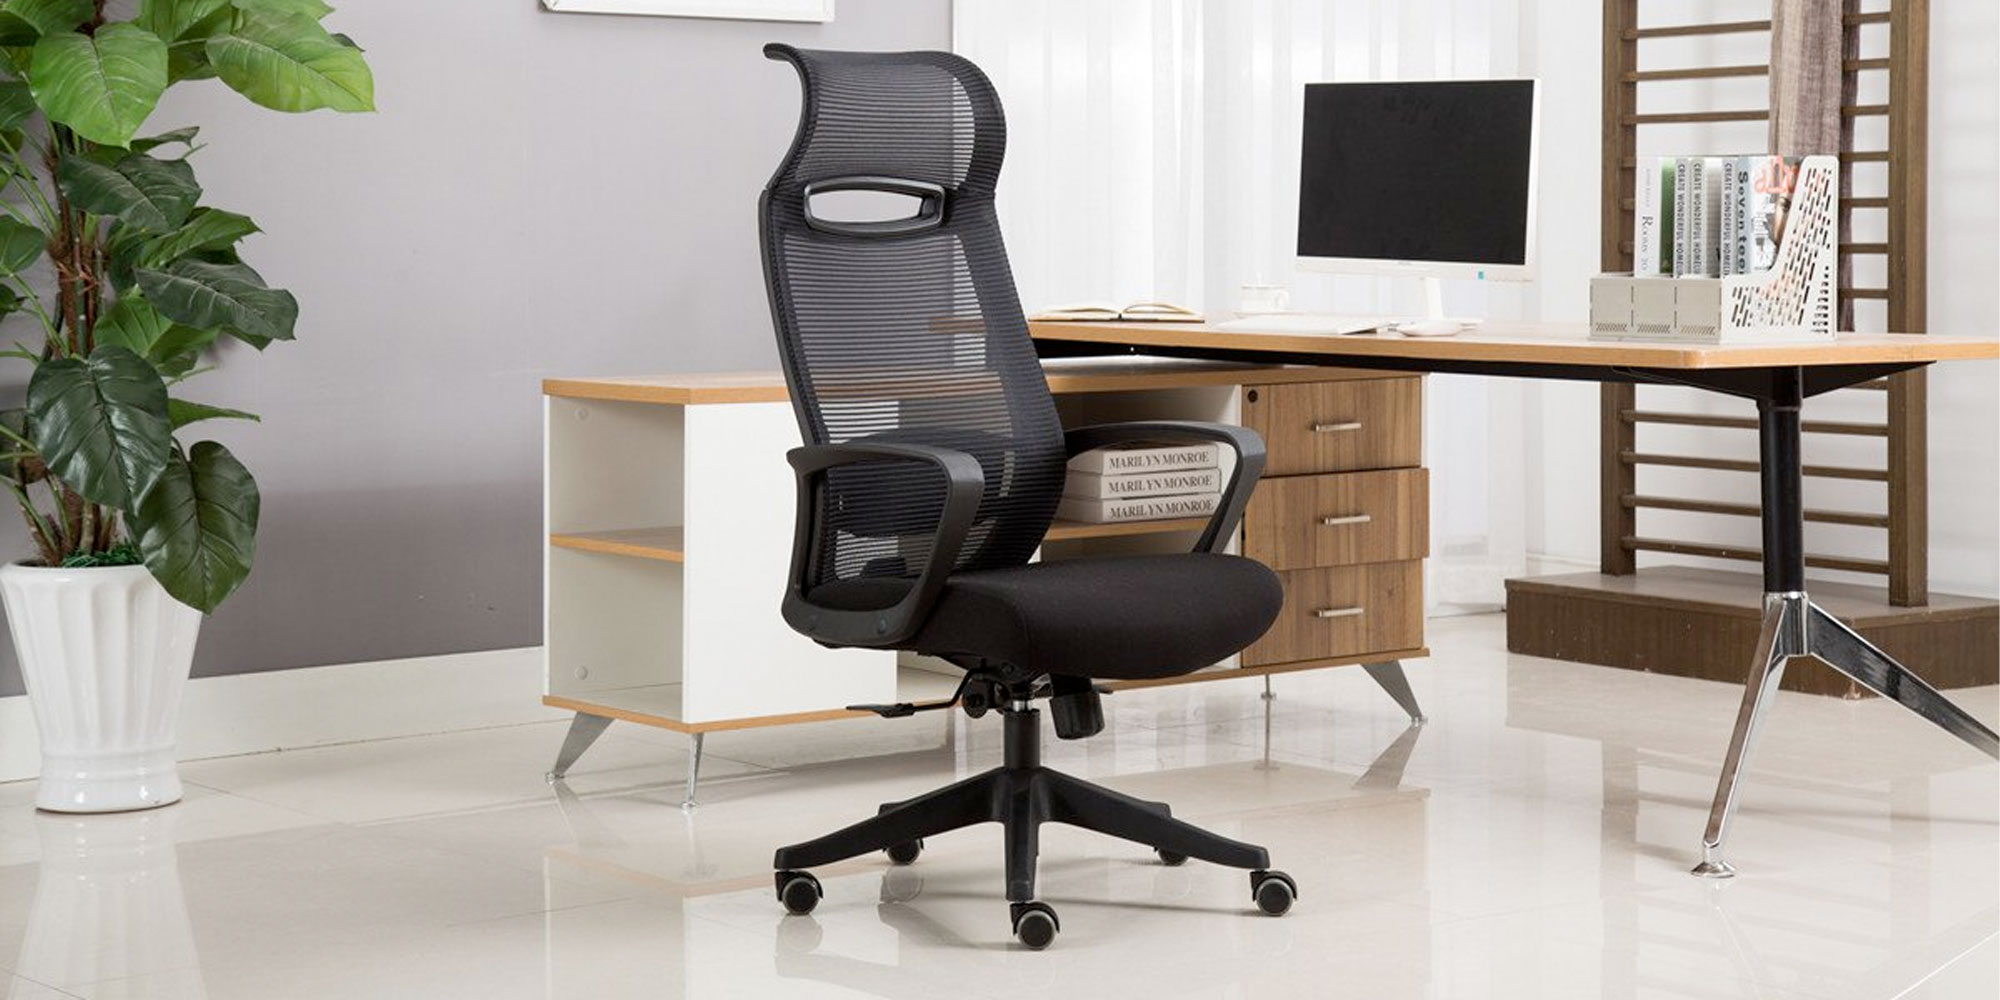 Finally get an ergonomic office chair w/ this high back model at $100 shipped (Reg. $130)